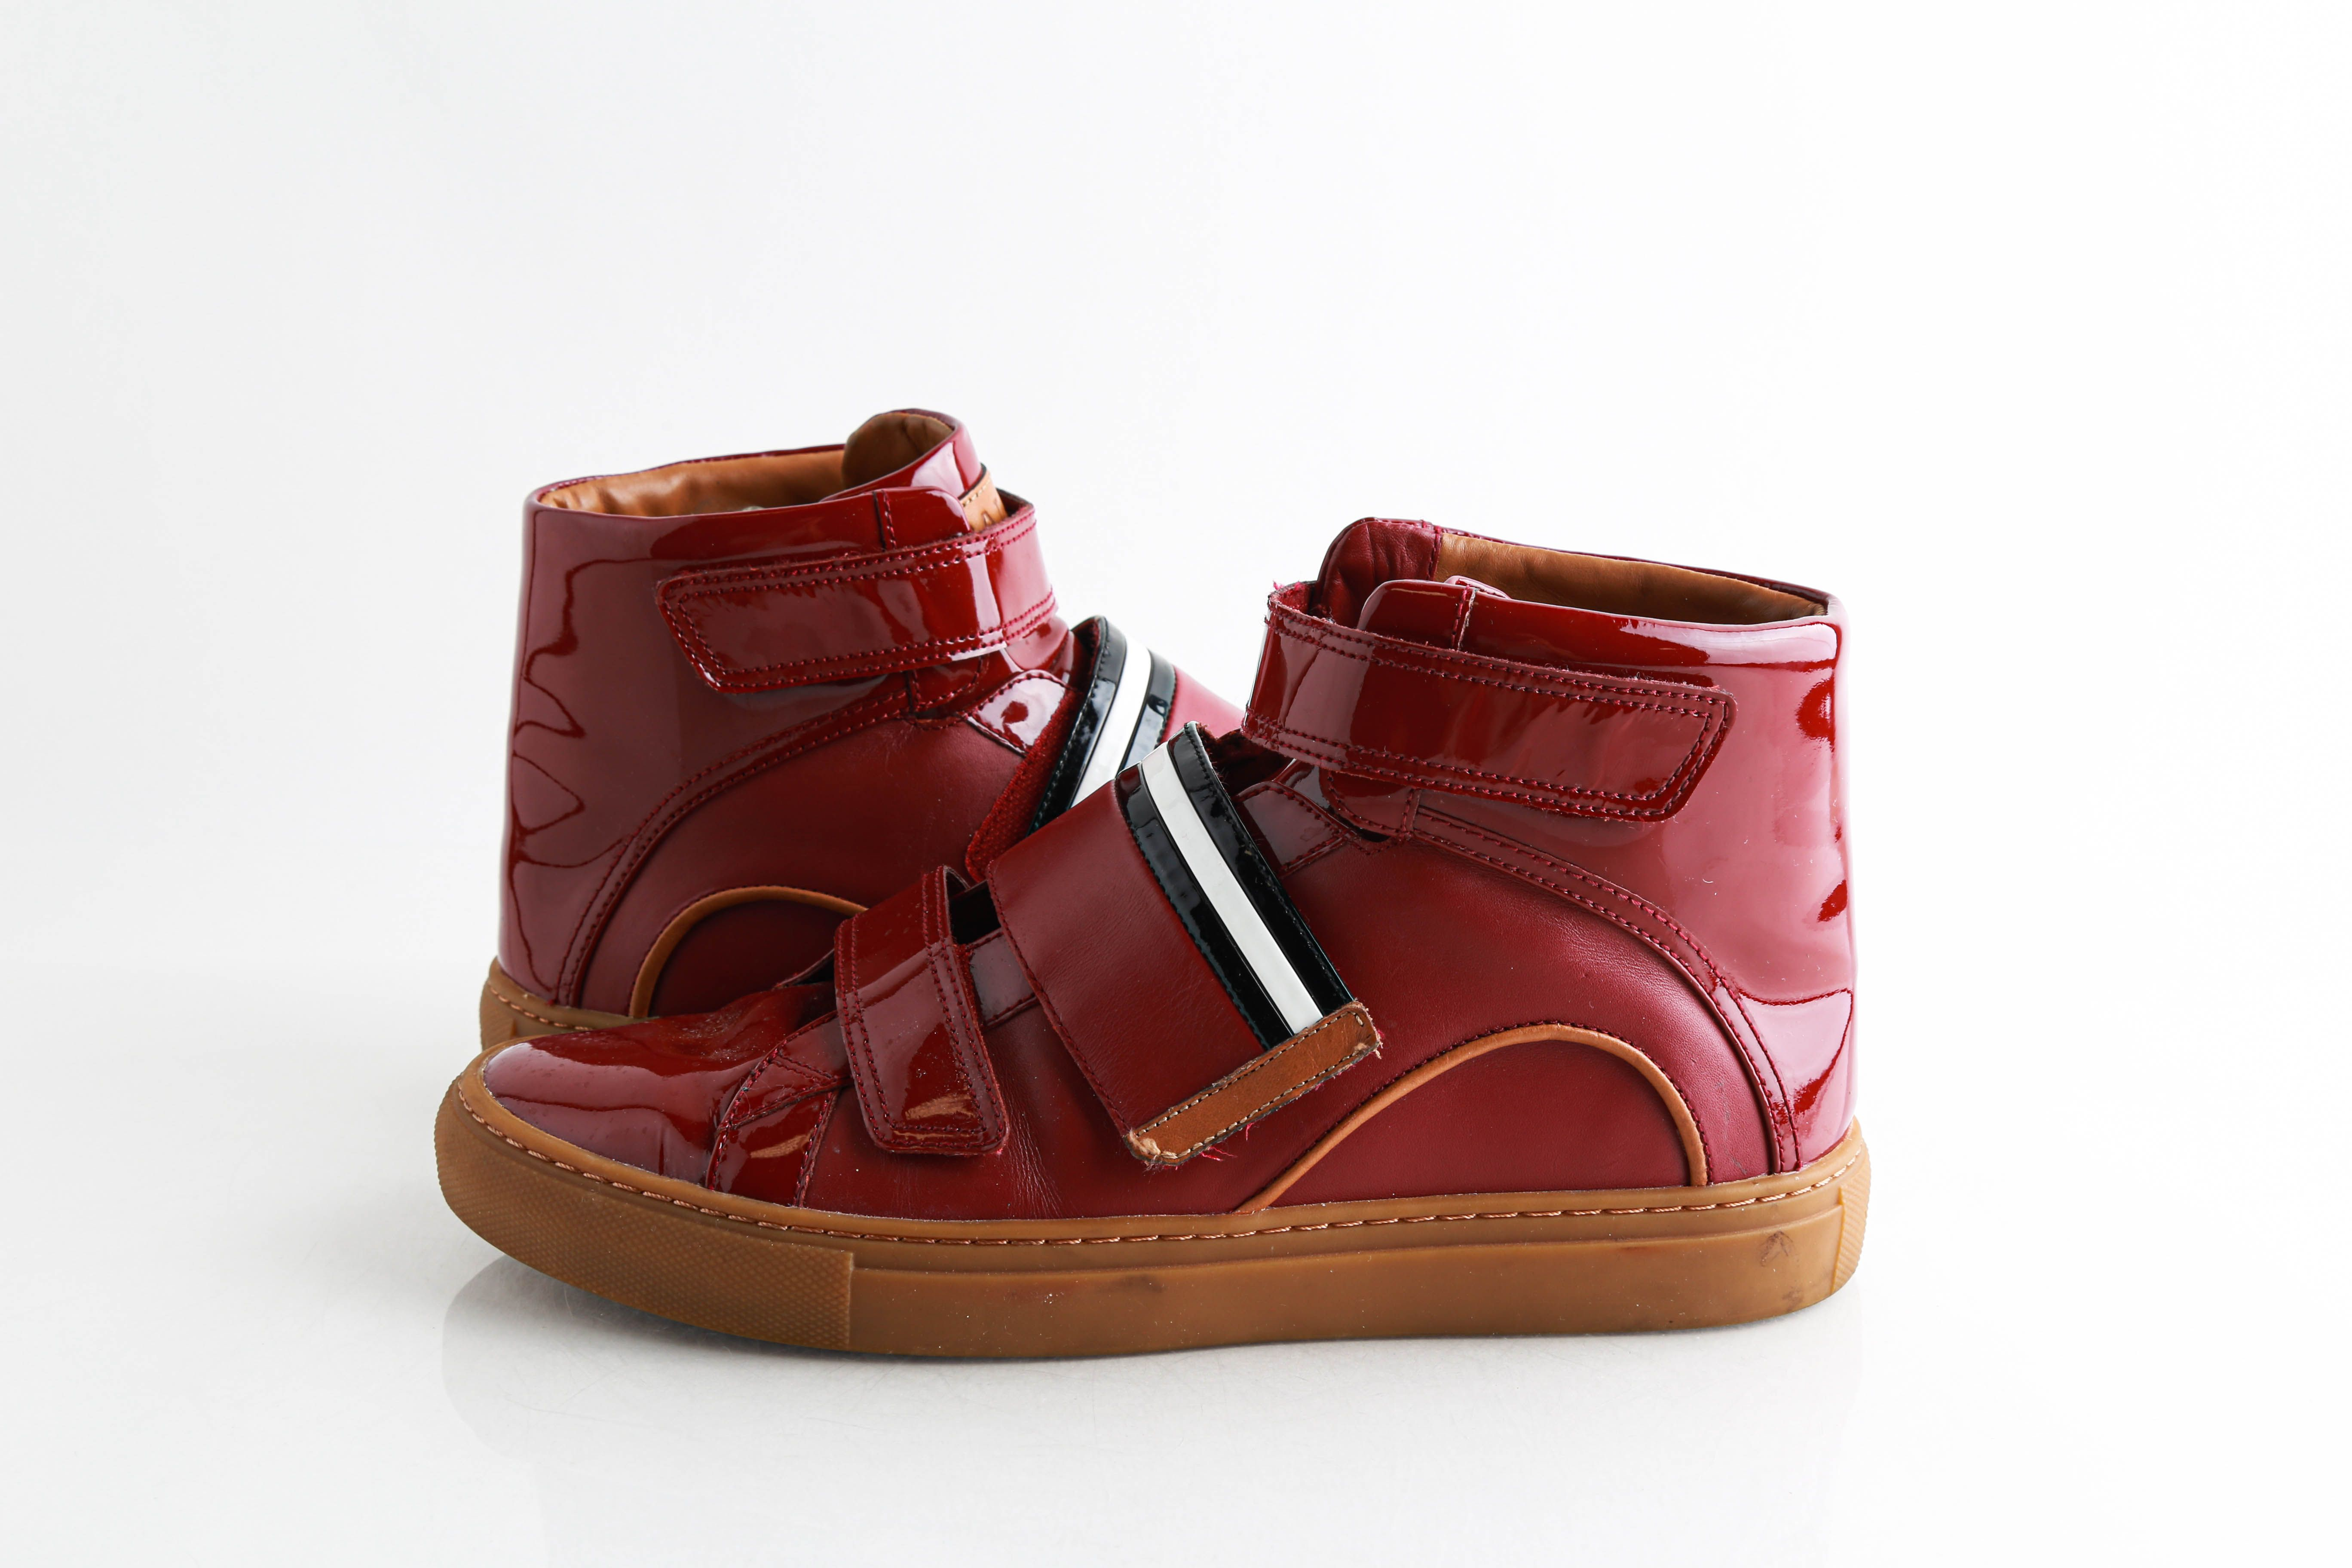 Bally Herick Leather High-Top Sneakers